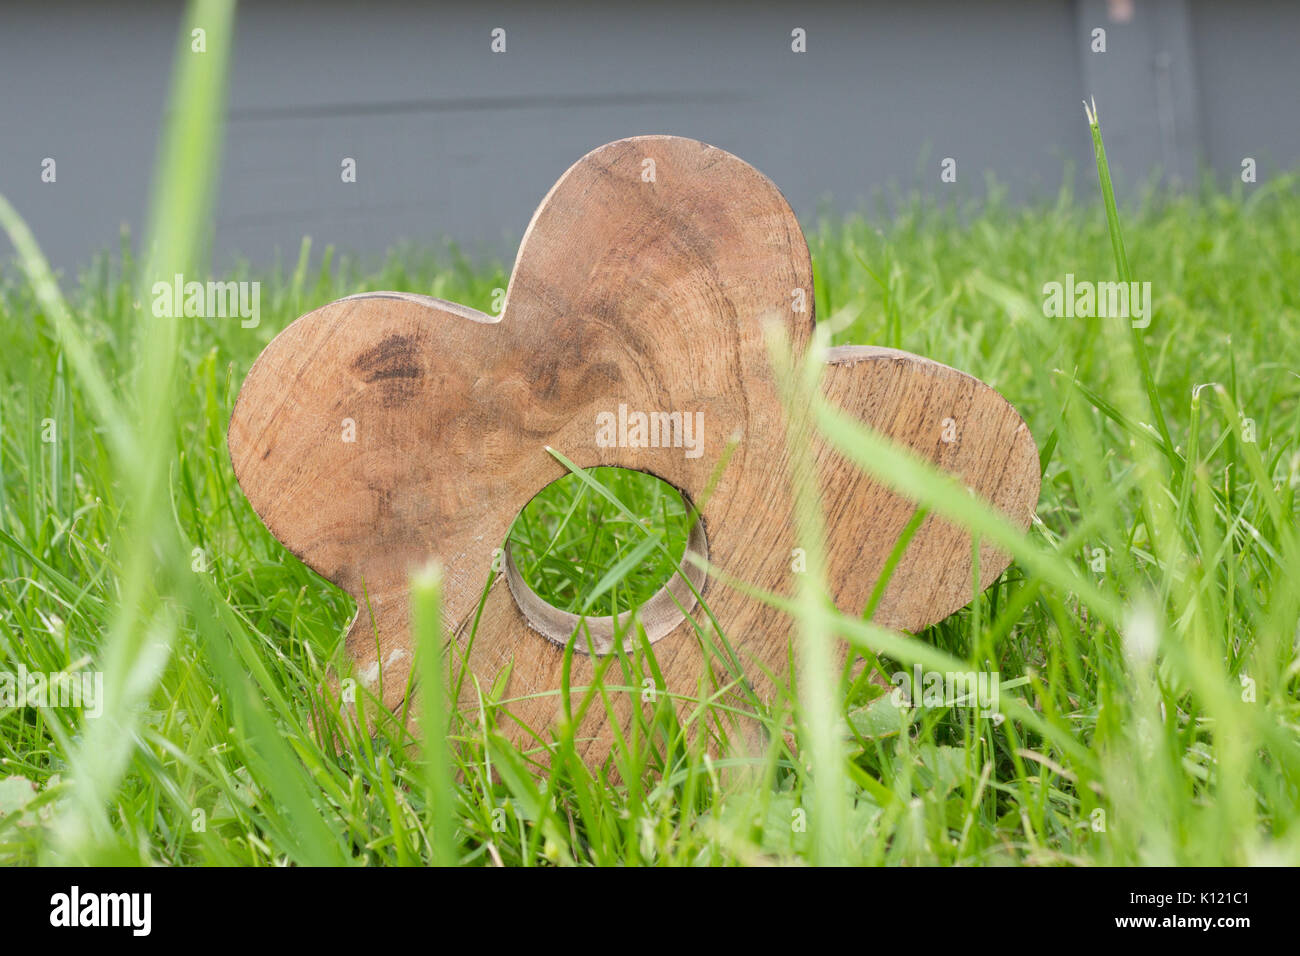 A wooden decoration in green grass against a gray wall. - Stock Image